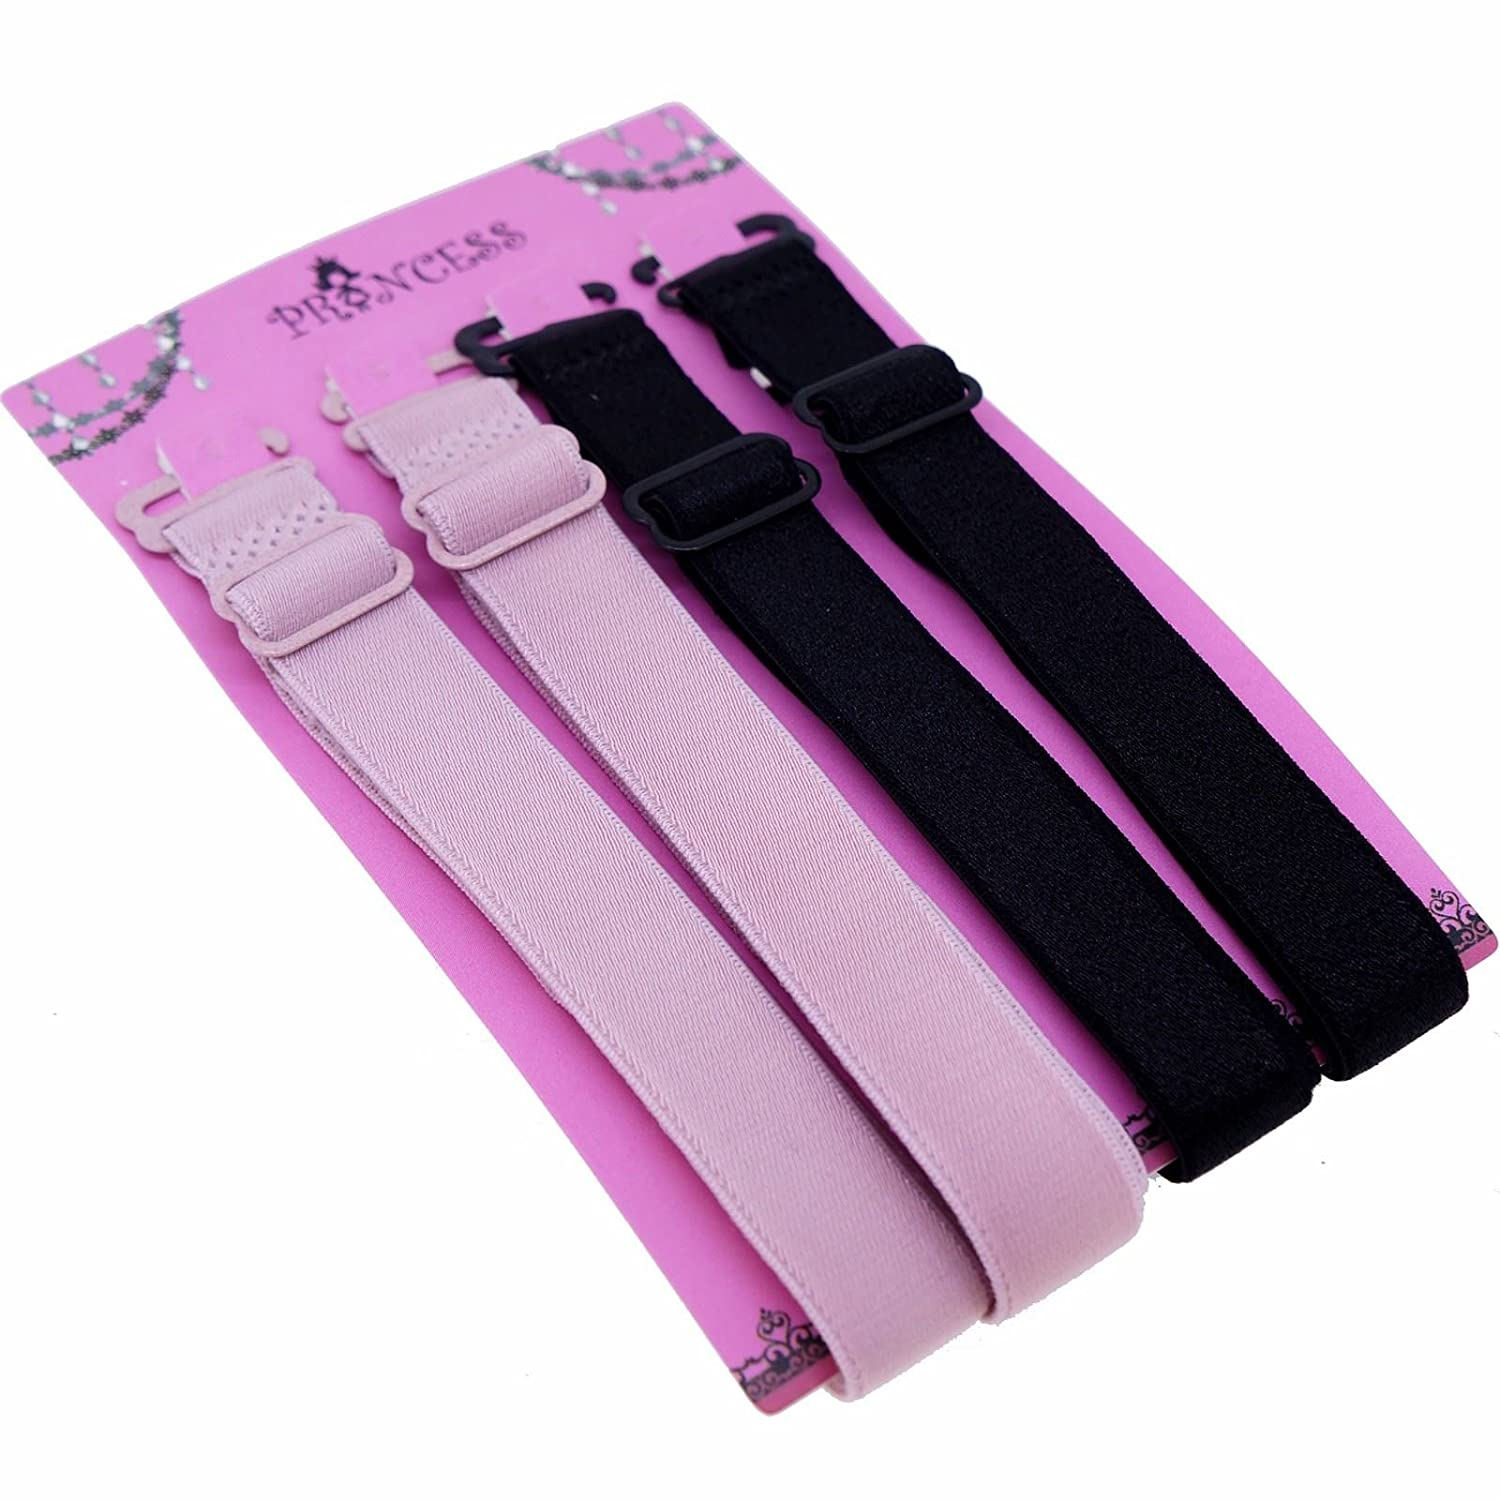 15mm Wide Band Fashion Stylish Bra Straps, Women's Accessories 10 Color Available Princess-J